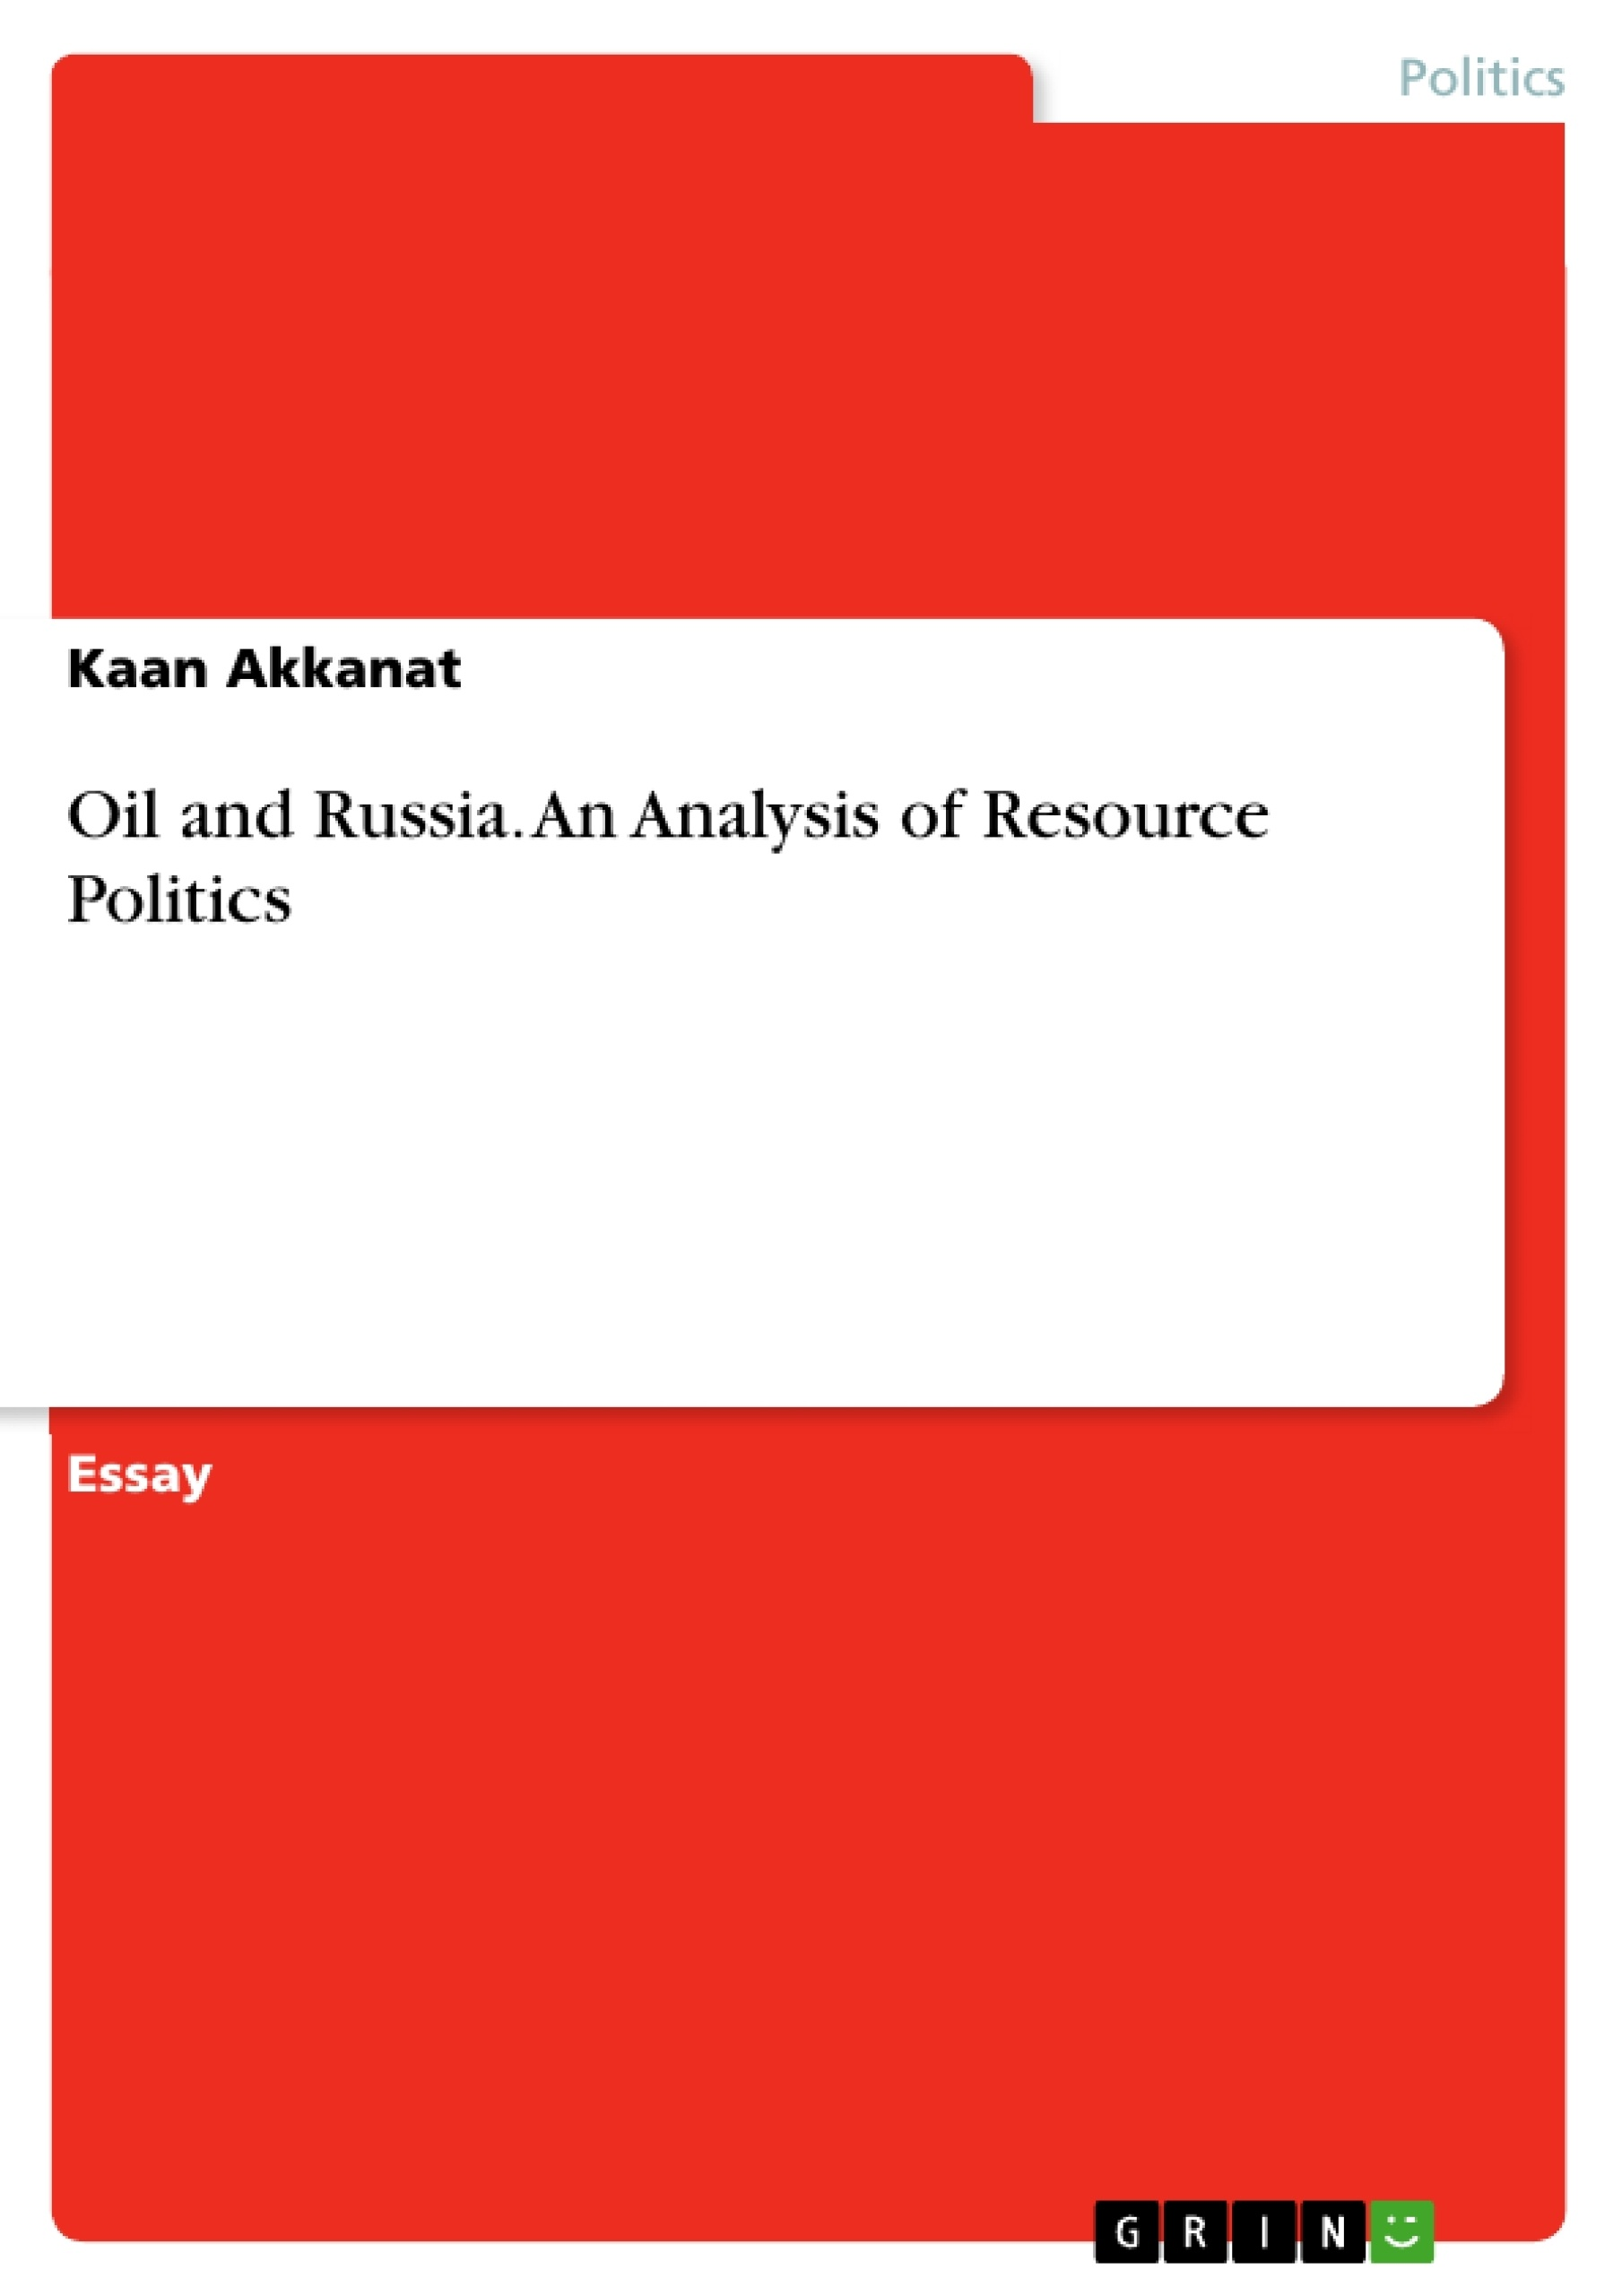 Title: Oil and Russia. An Analysis of Resource Politics